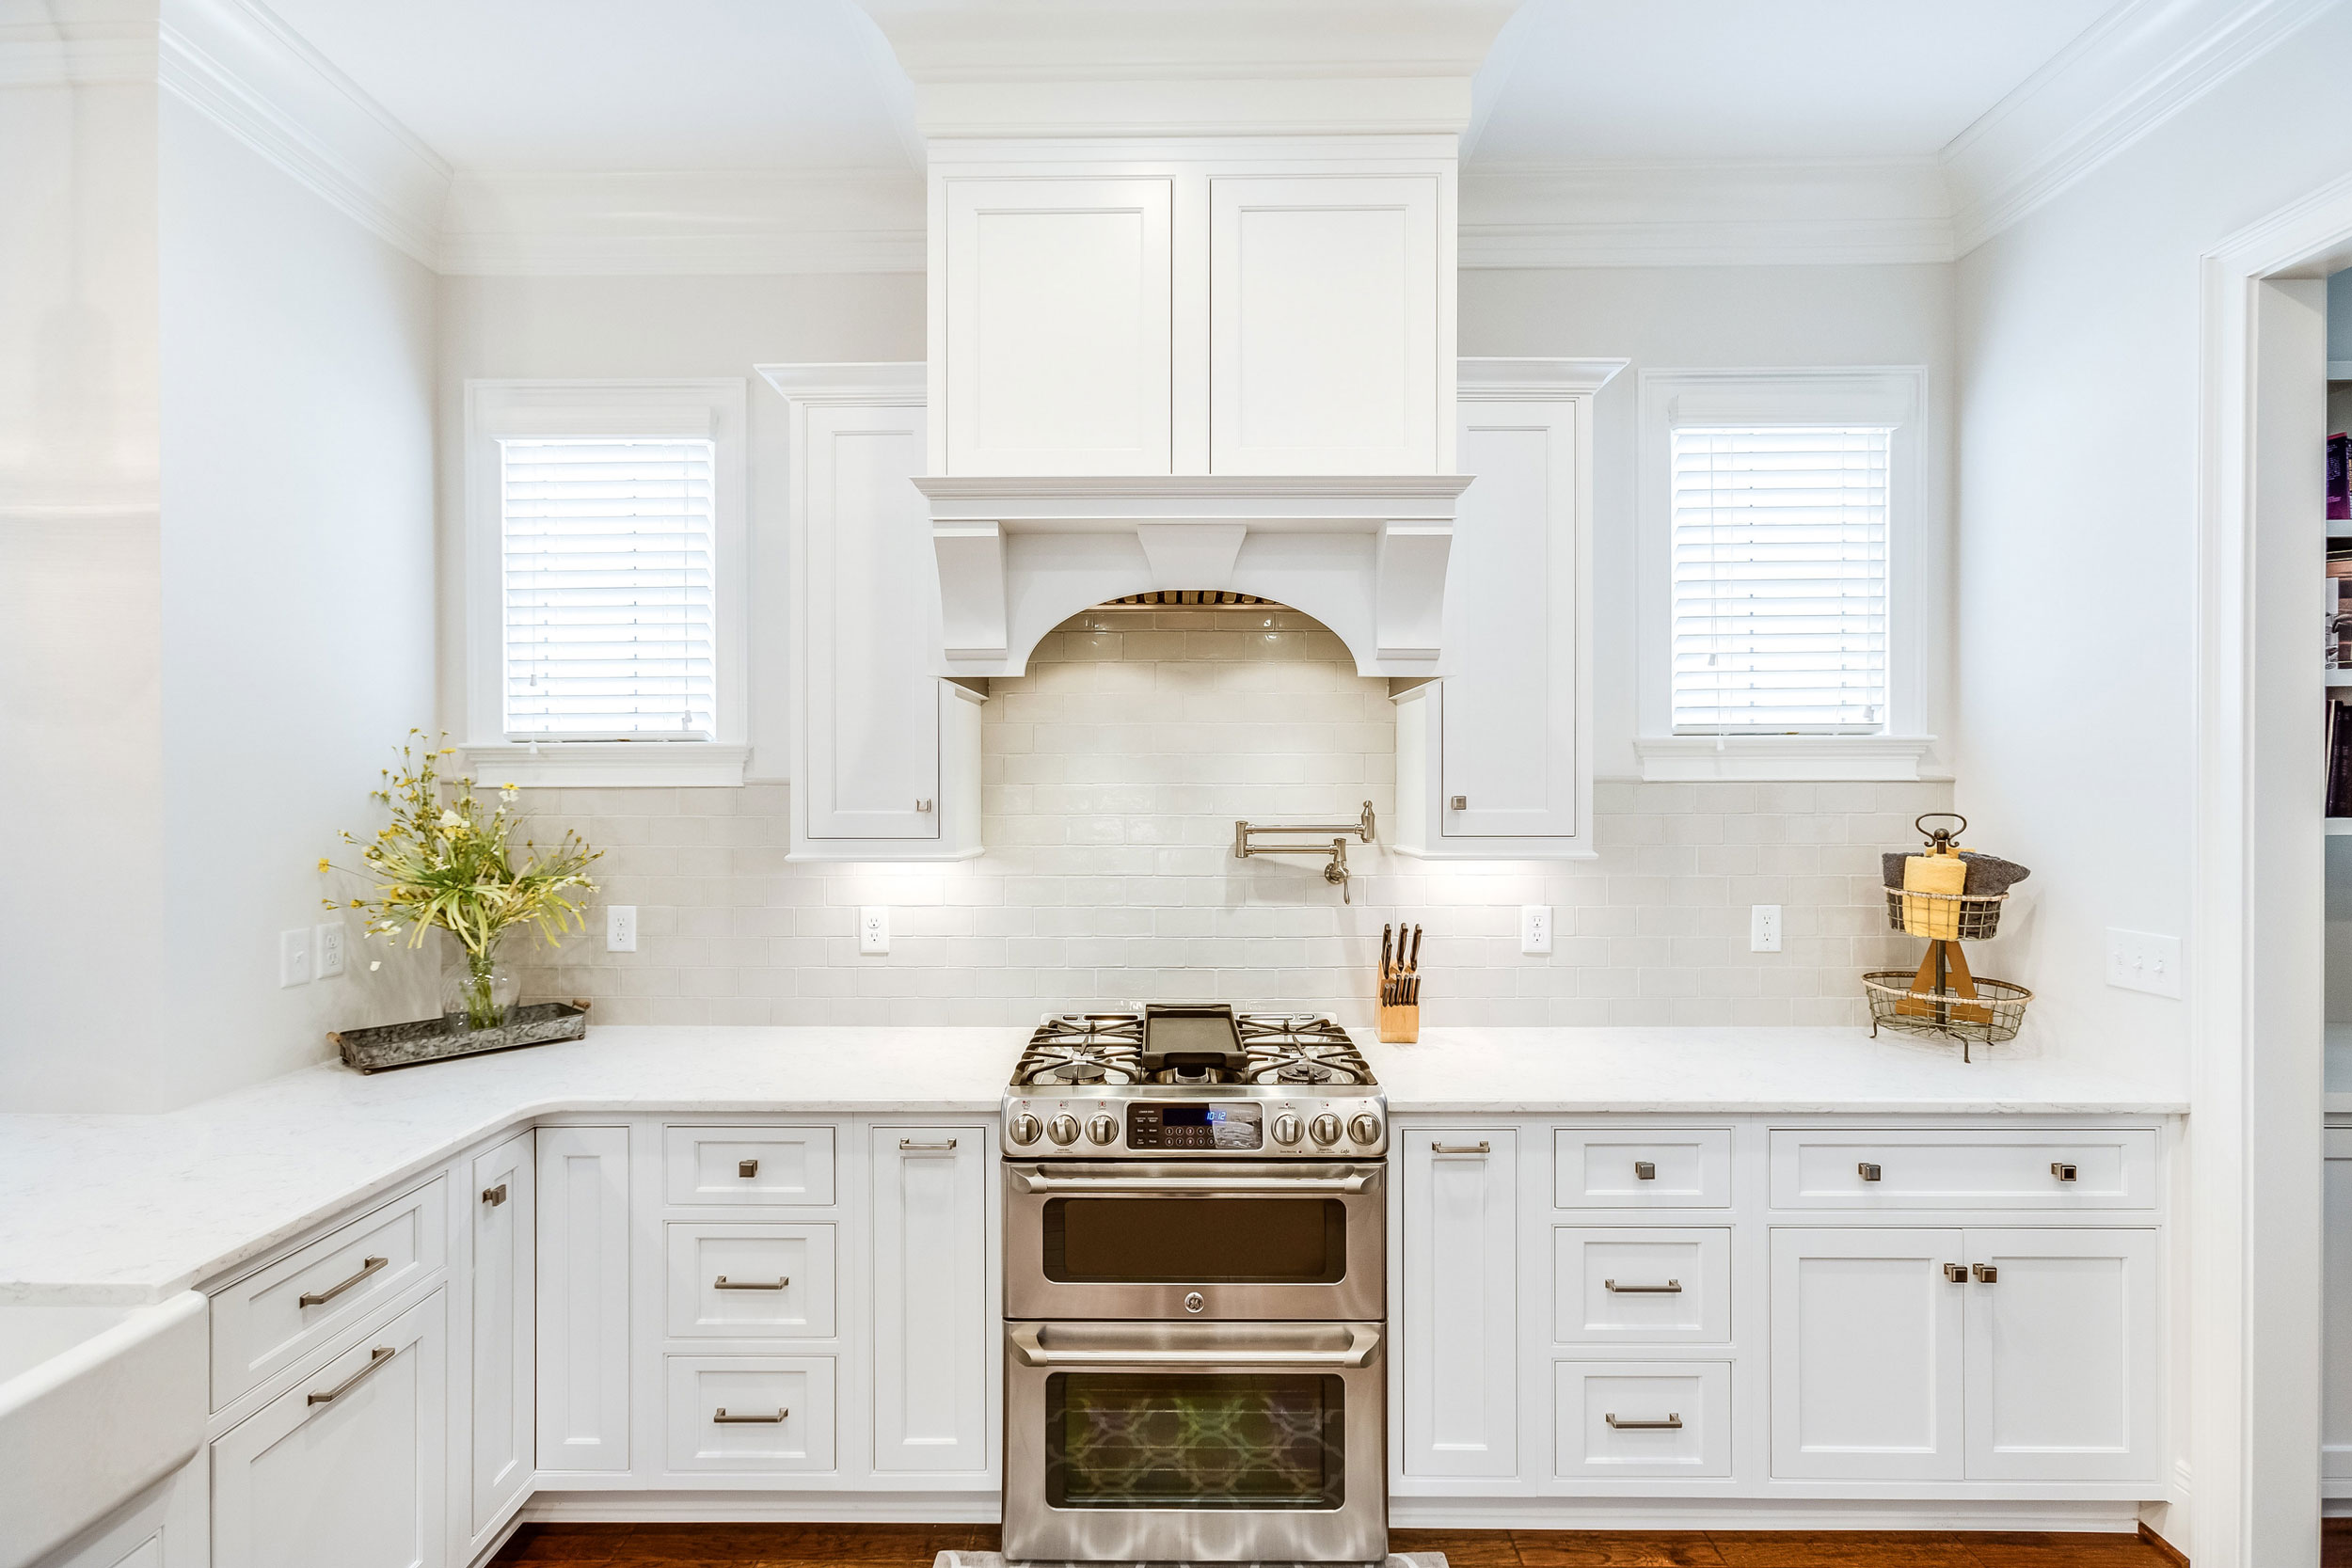 The custom range hood acts as a focal point in this kitchen.